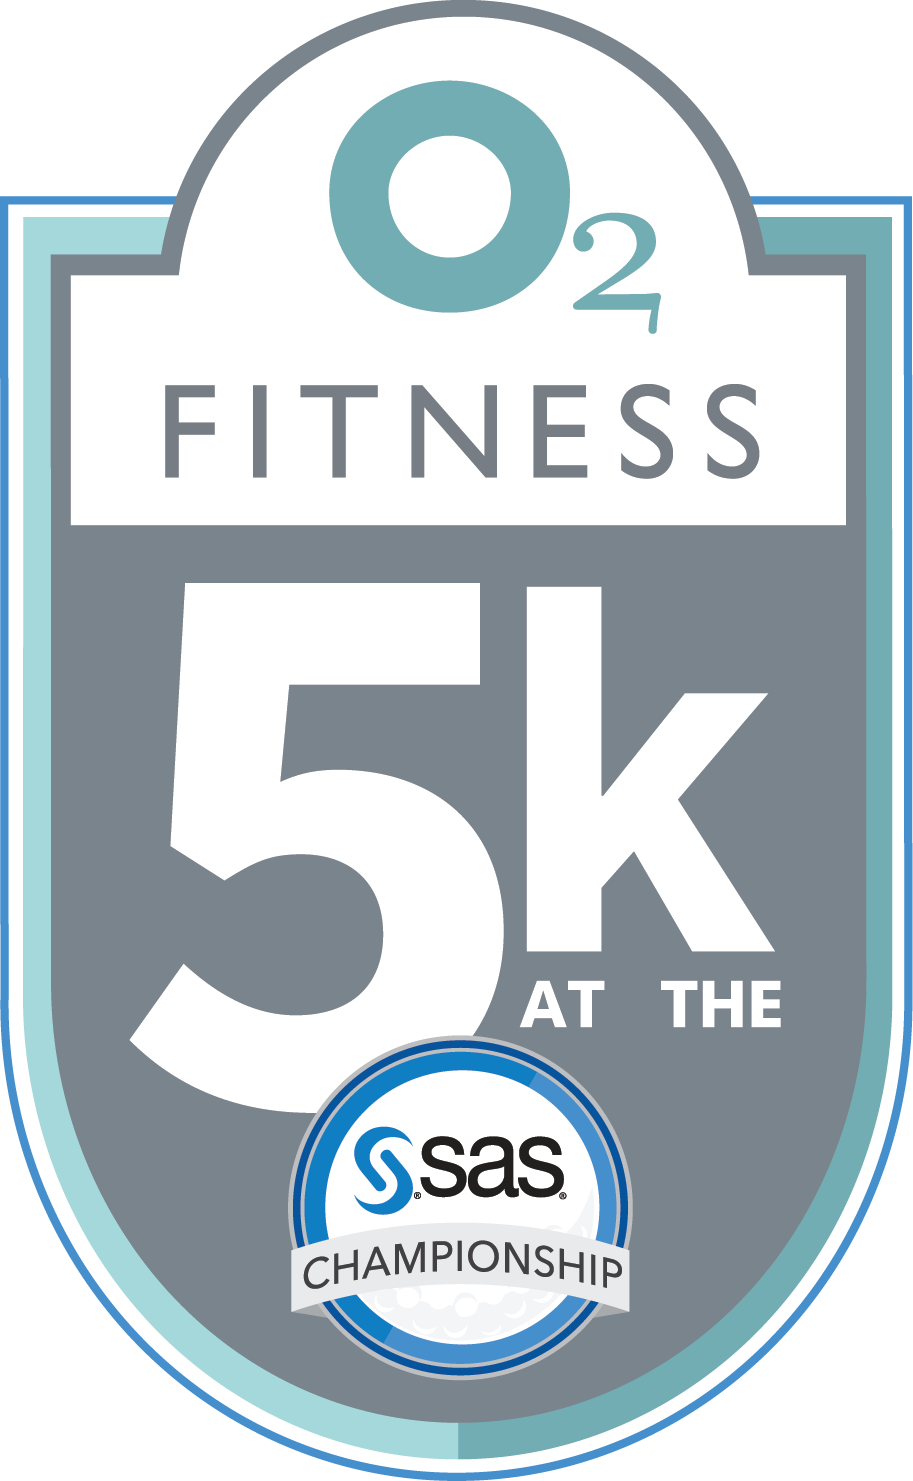 O2 Fitness 5K at the SAS Championship